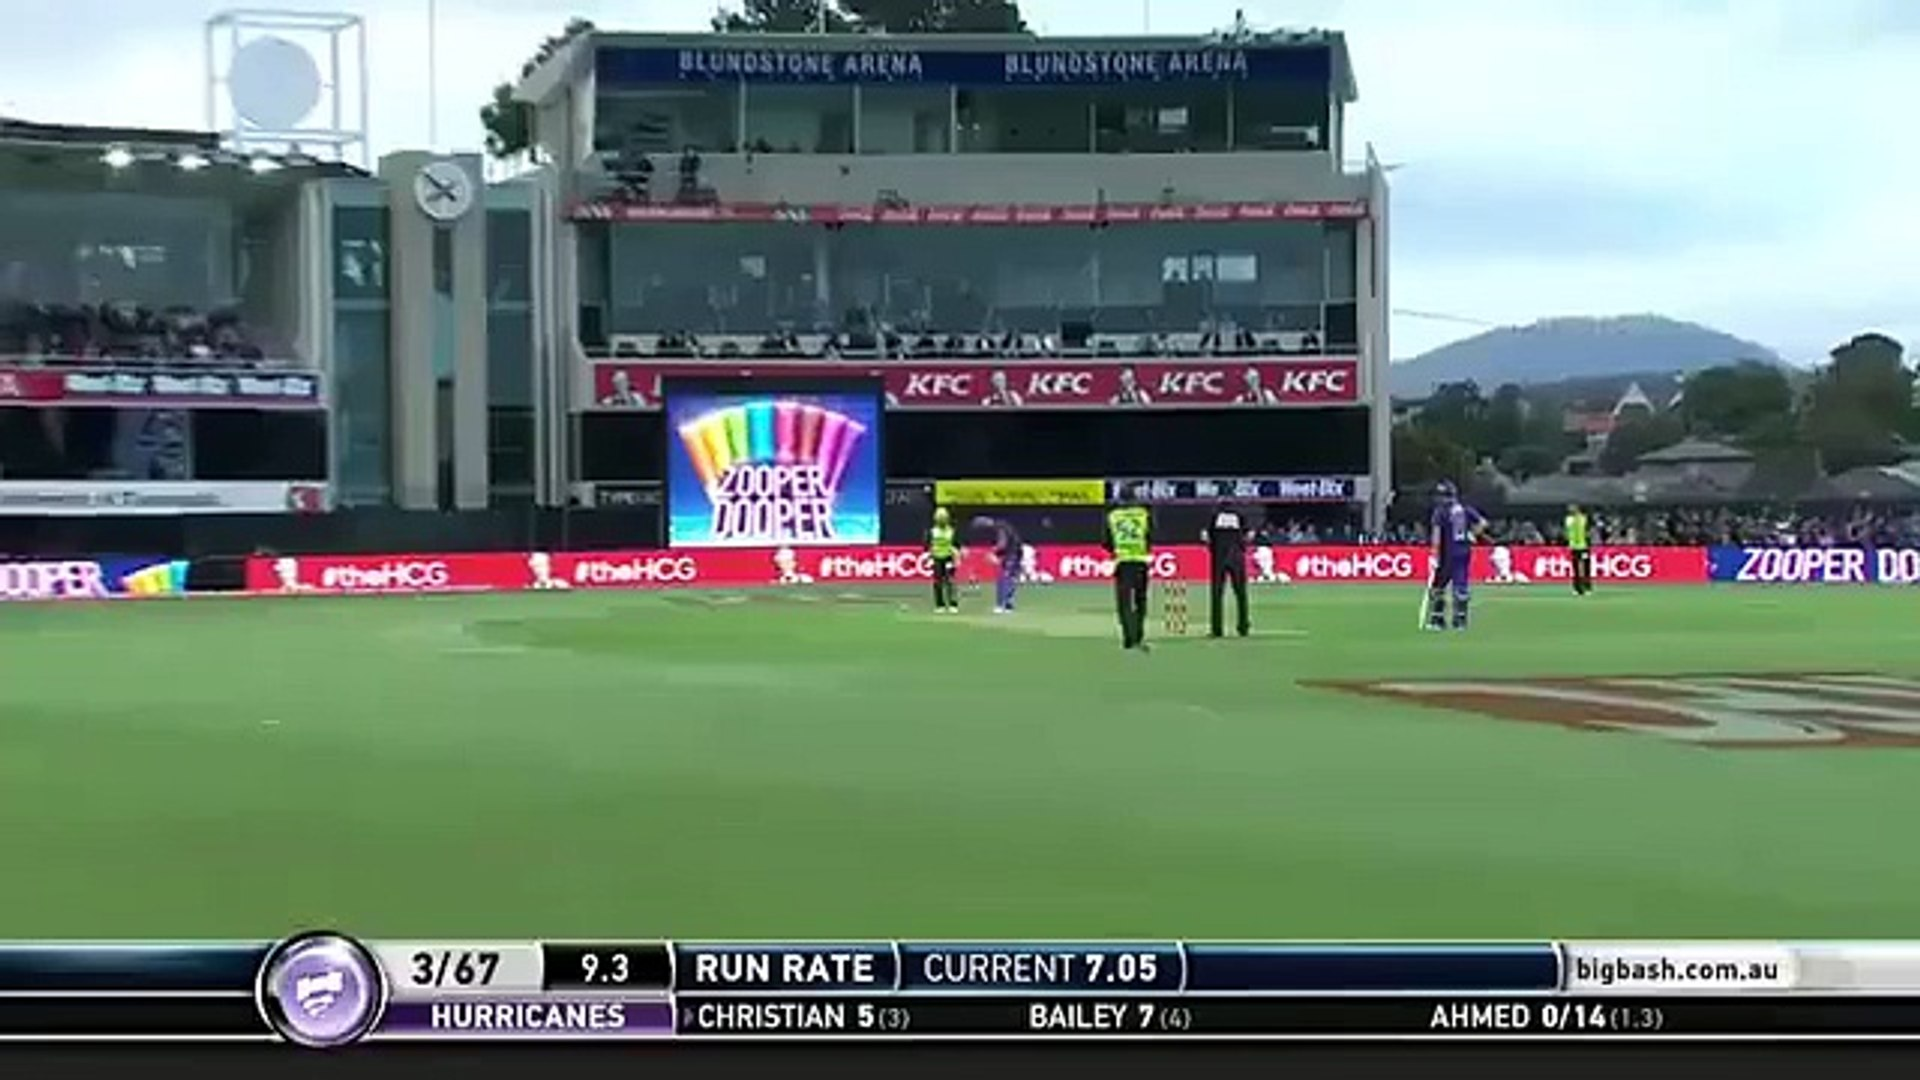 CATCH OF THE TOURNAMENT- Andre Russell takes a flying catch